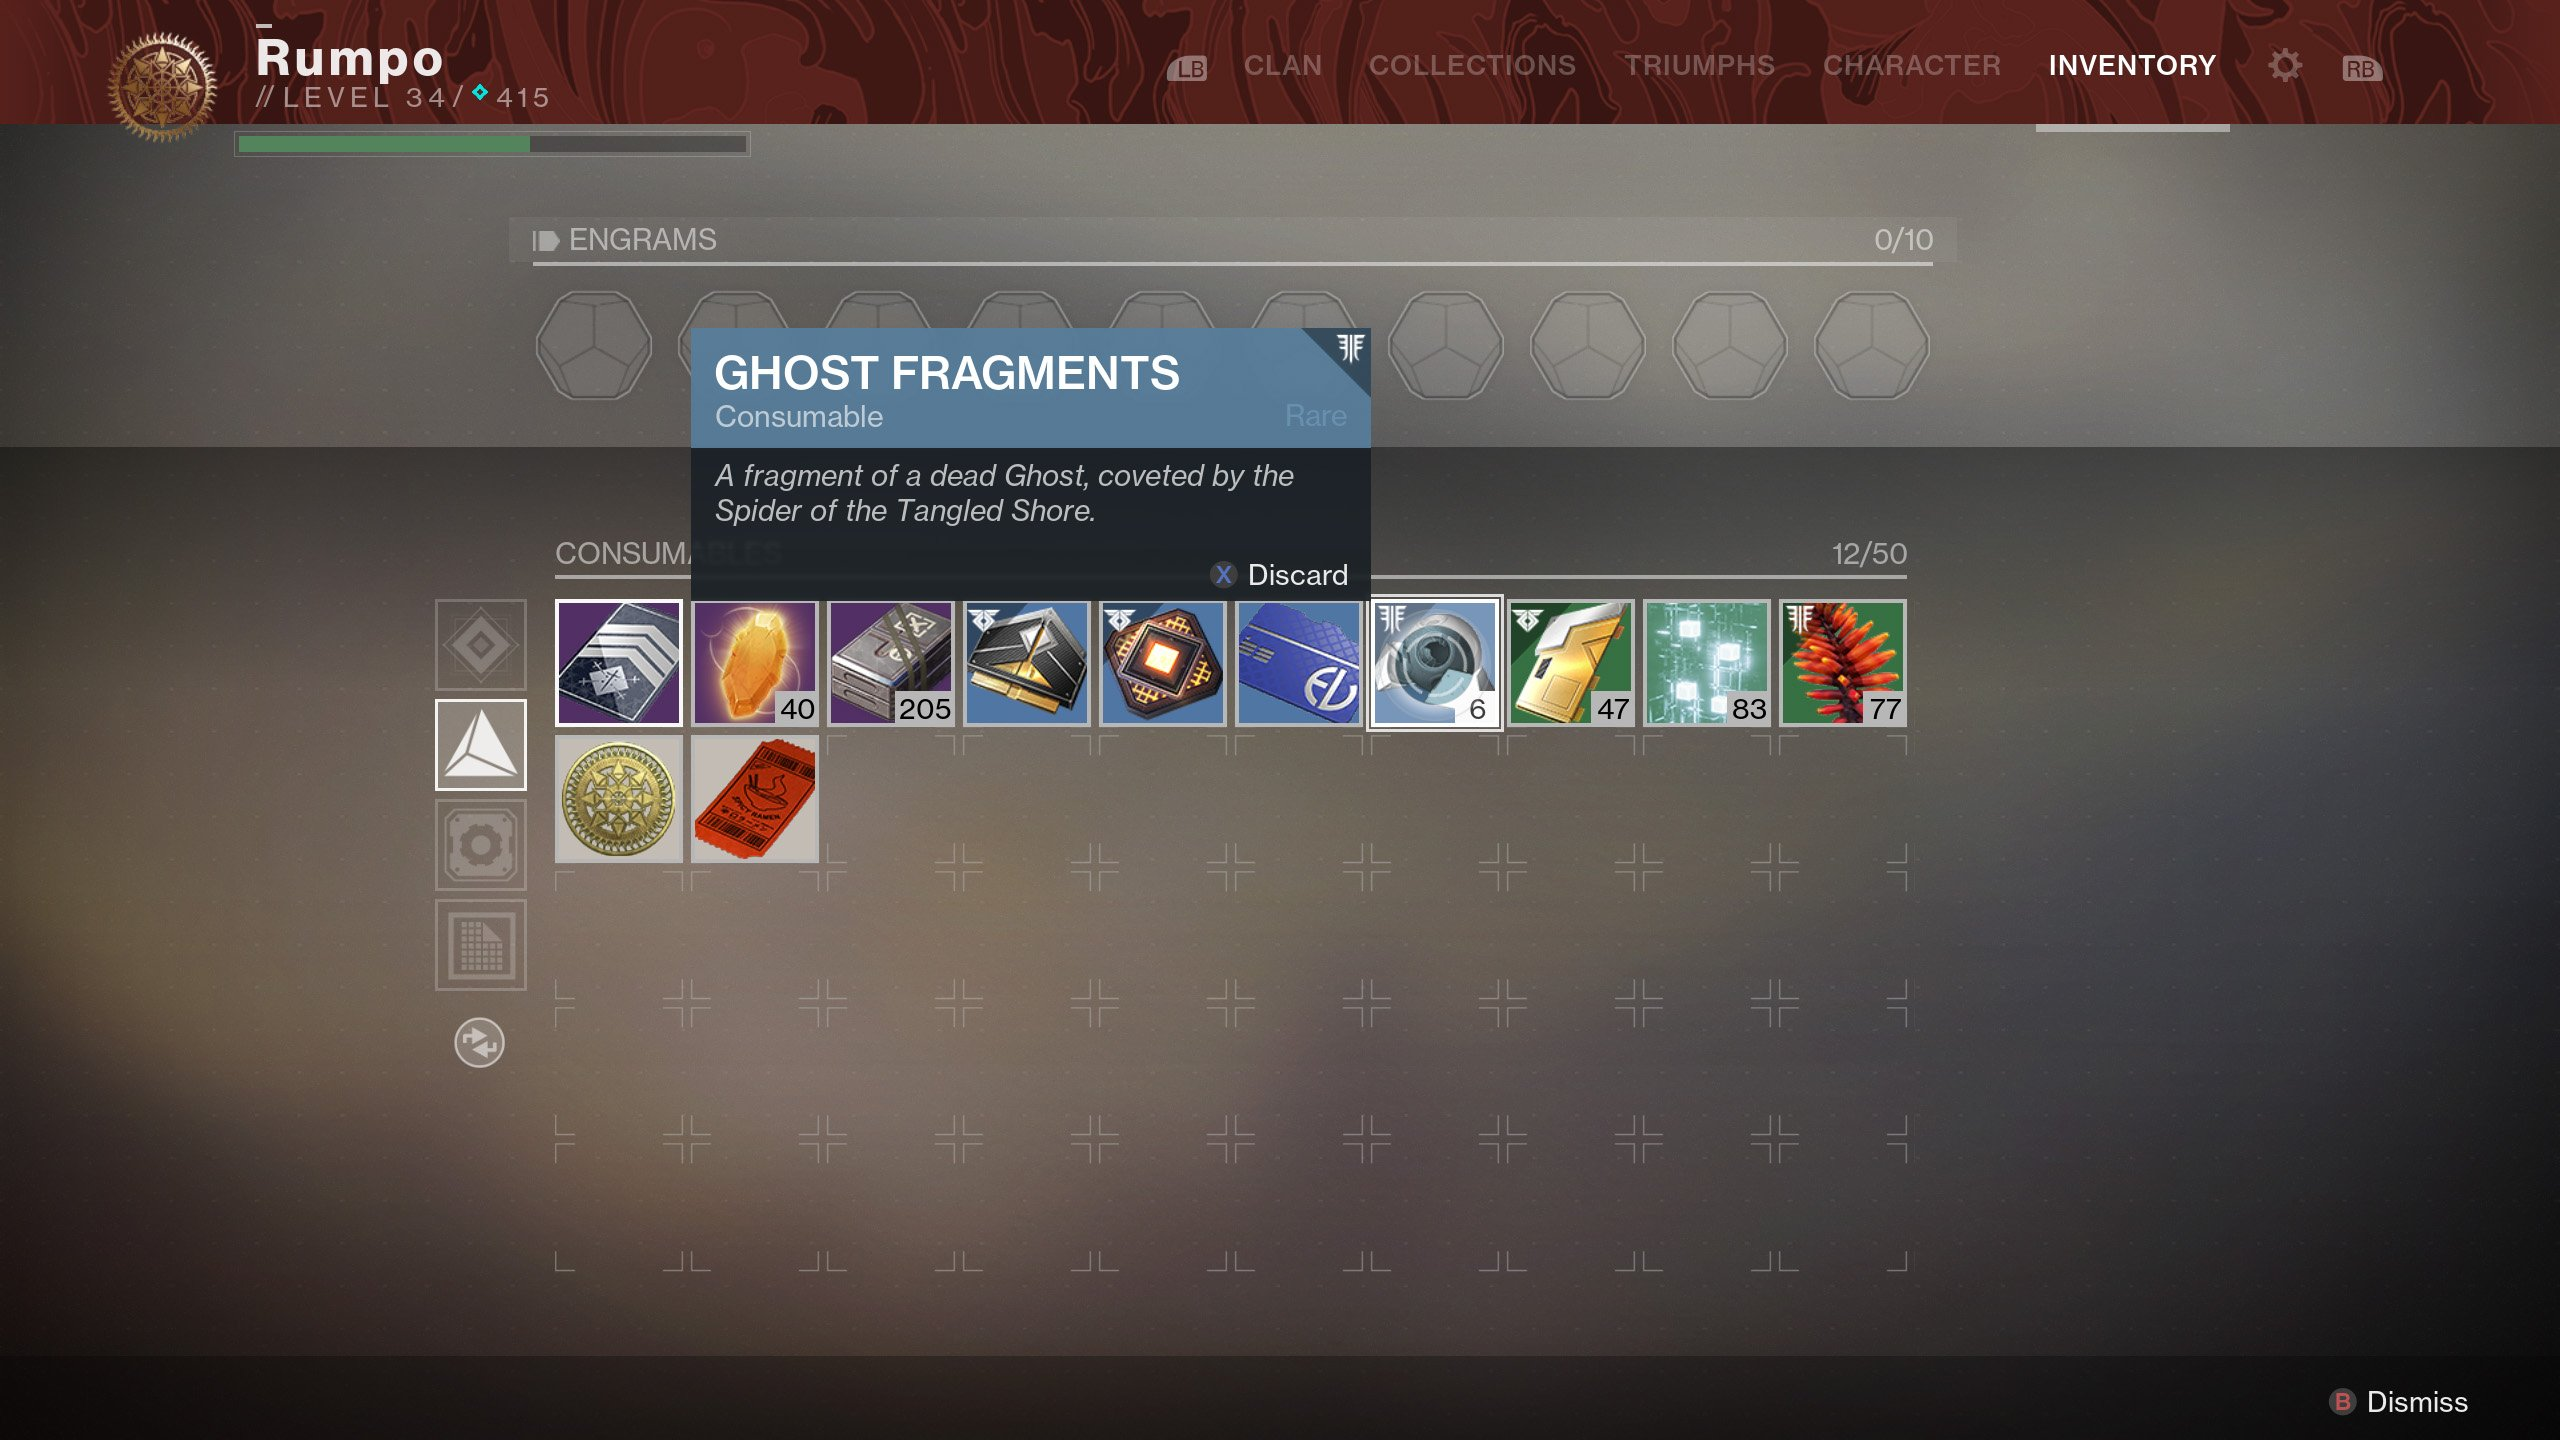 Destiny 2 Ghost Fragments